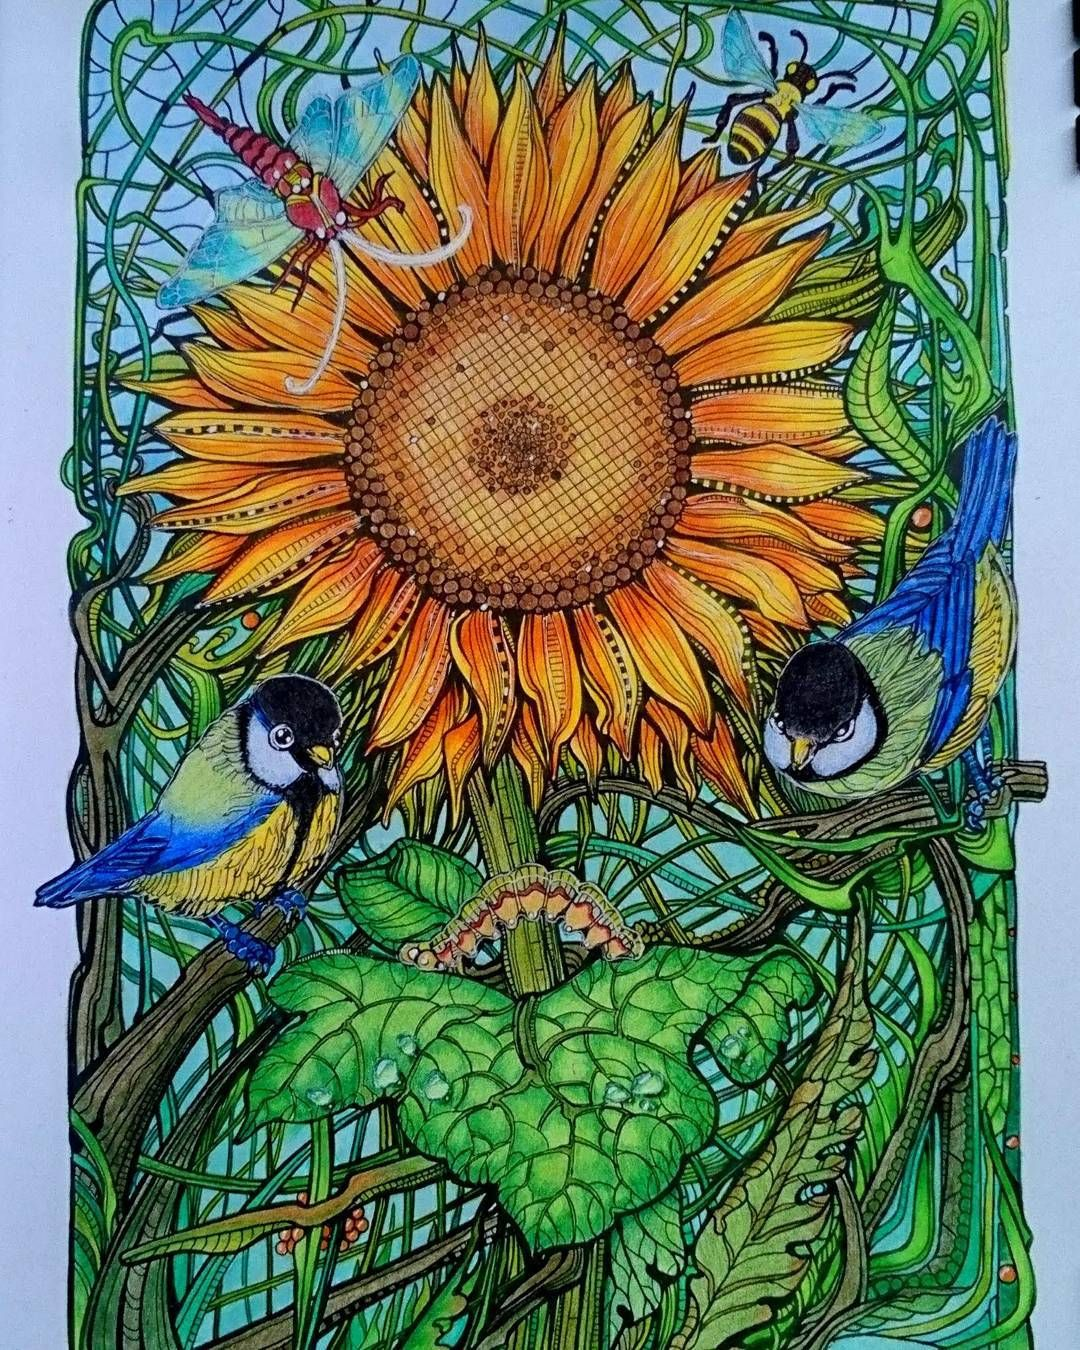 This Is My Contribution For Coloralong Februarylovebirds Hosted By Suzied56 Manicbotanic Irinavinnik Zifflin Coloring Books Painting Art